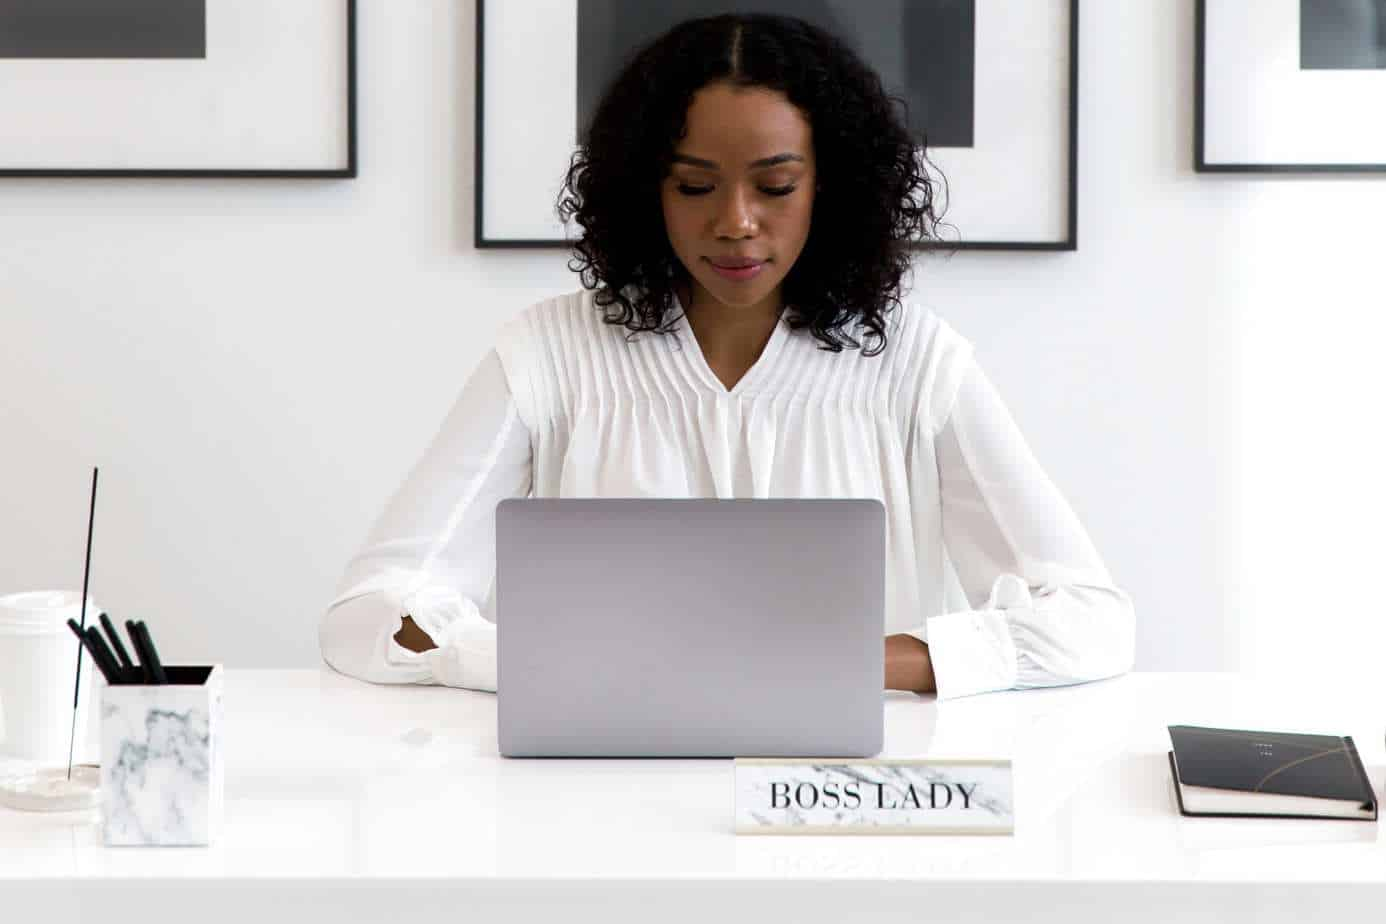 woman at keyboard with notice saying boss lady